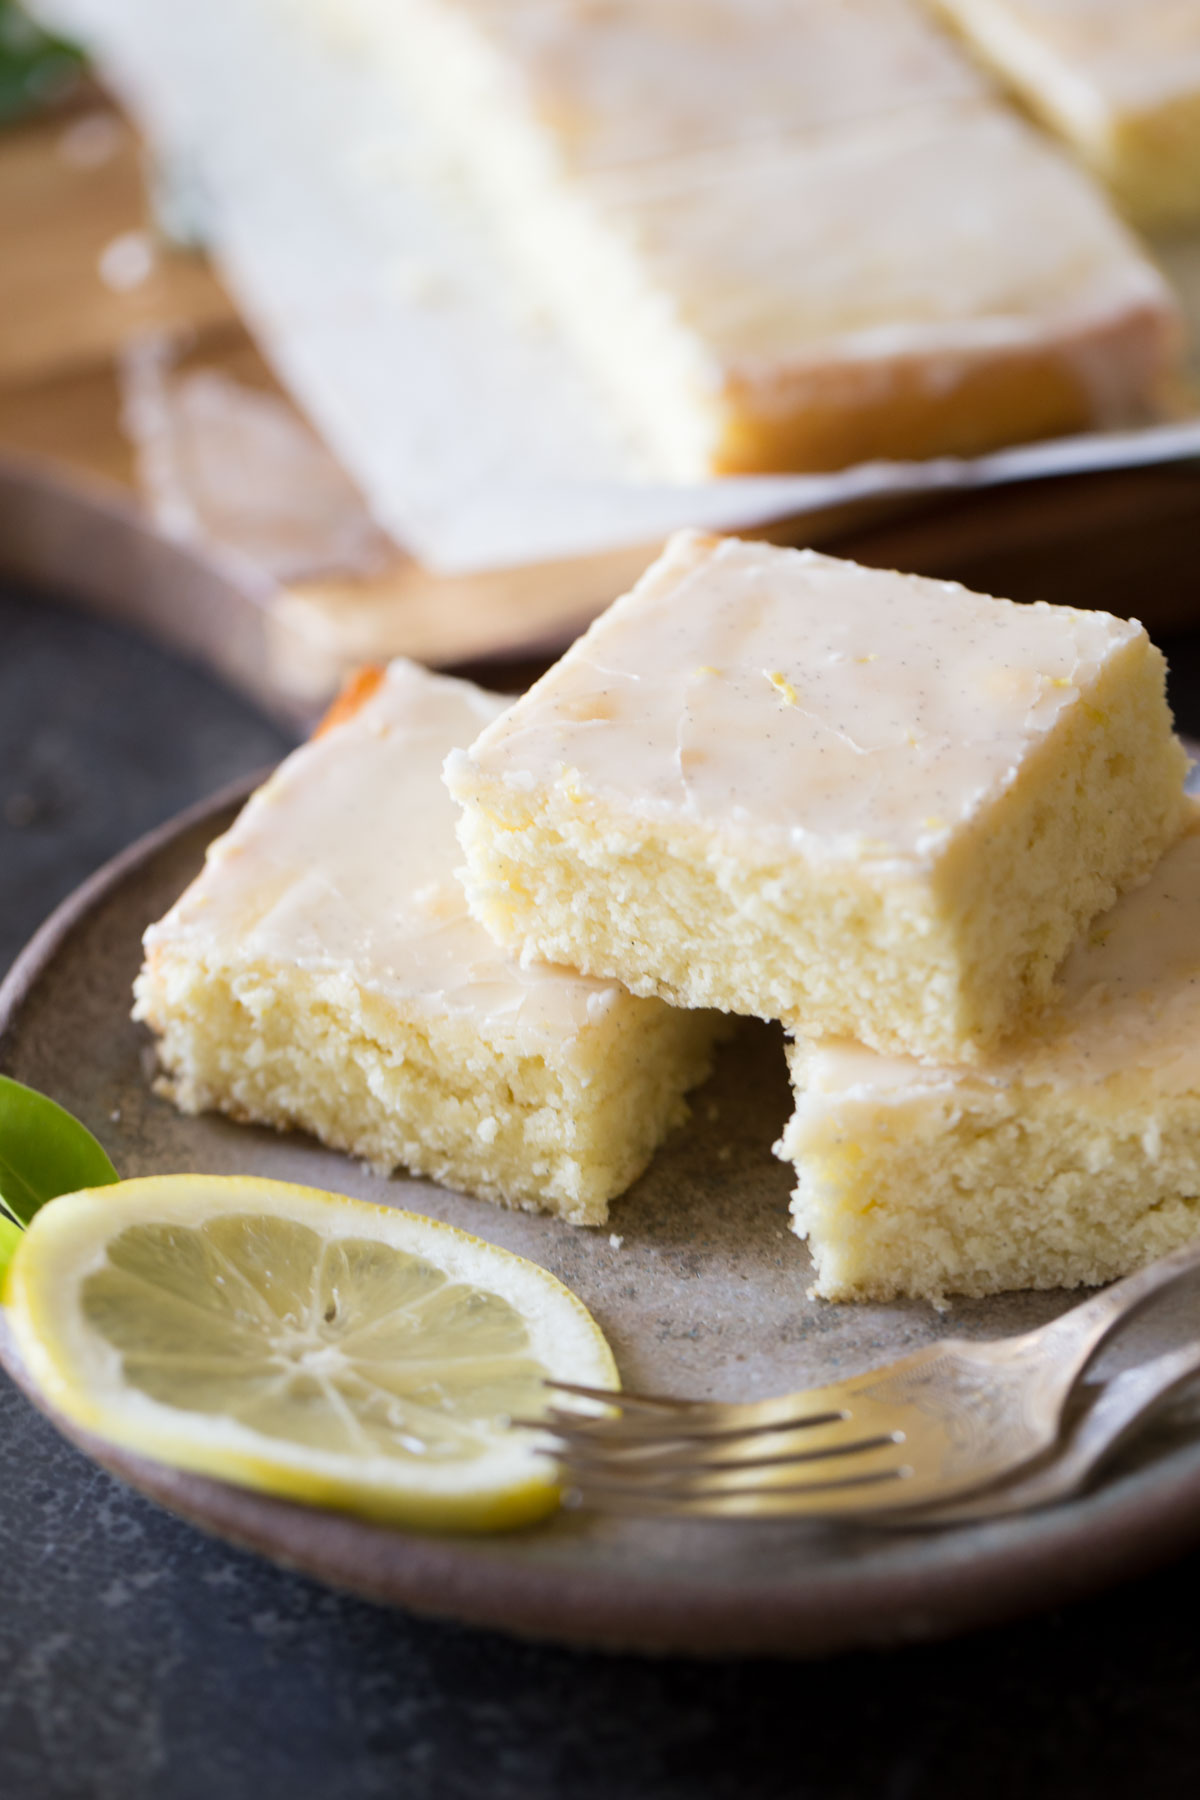 Three Vanilla Bean Lemon Bars on a plate with two forks and a lemon slice, with more Vanilla Bean Lemon Bars in the background.